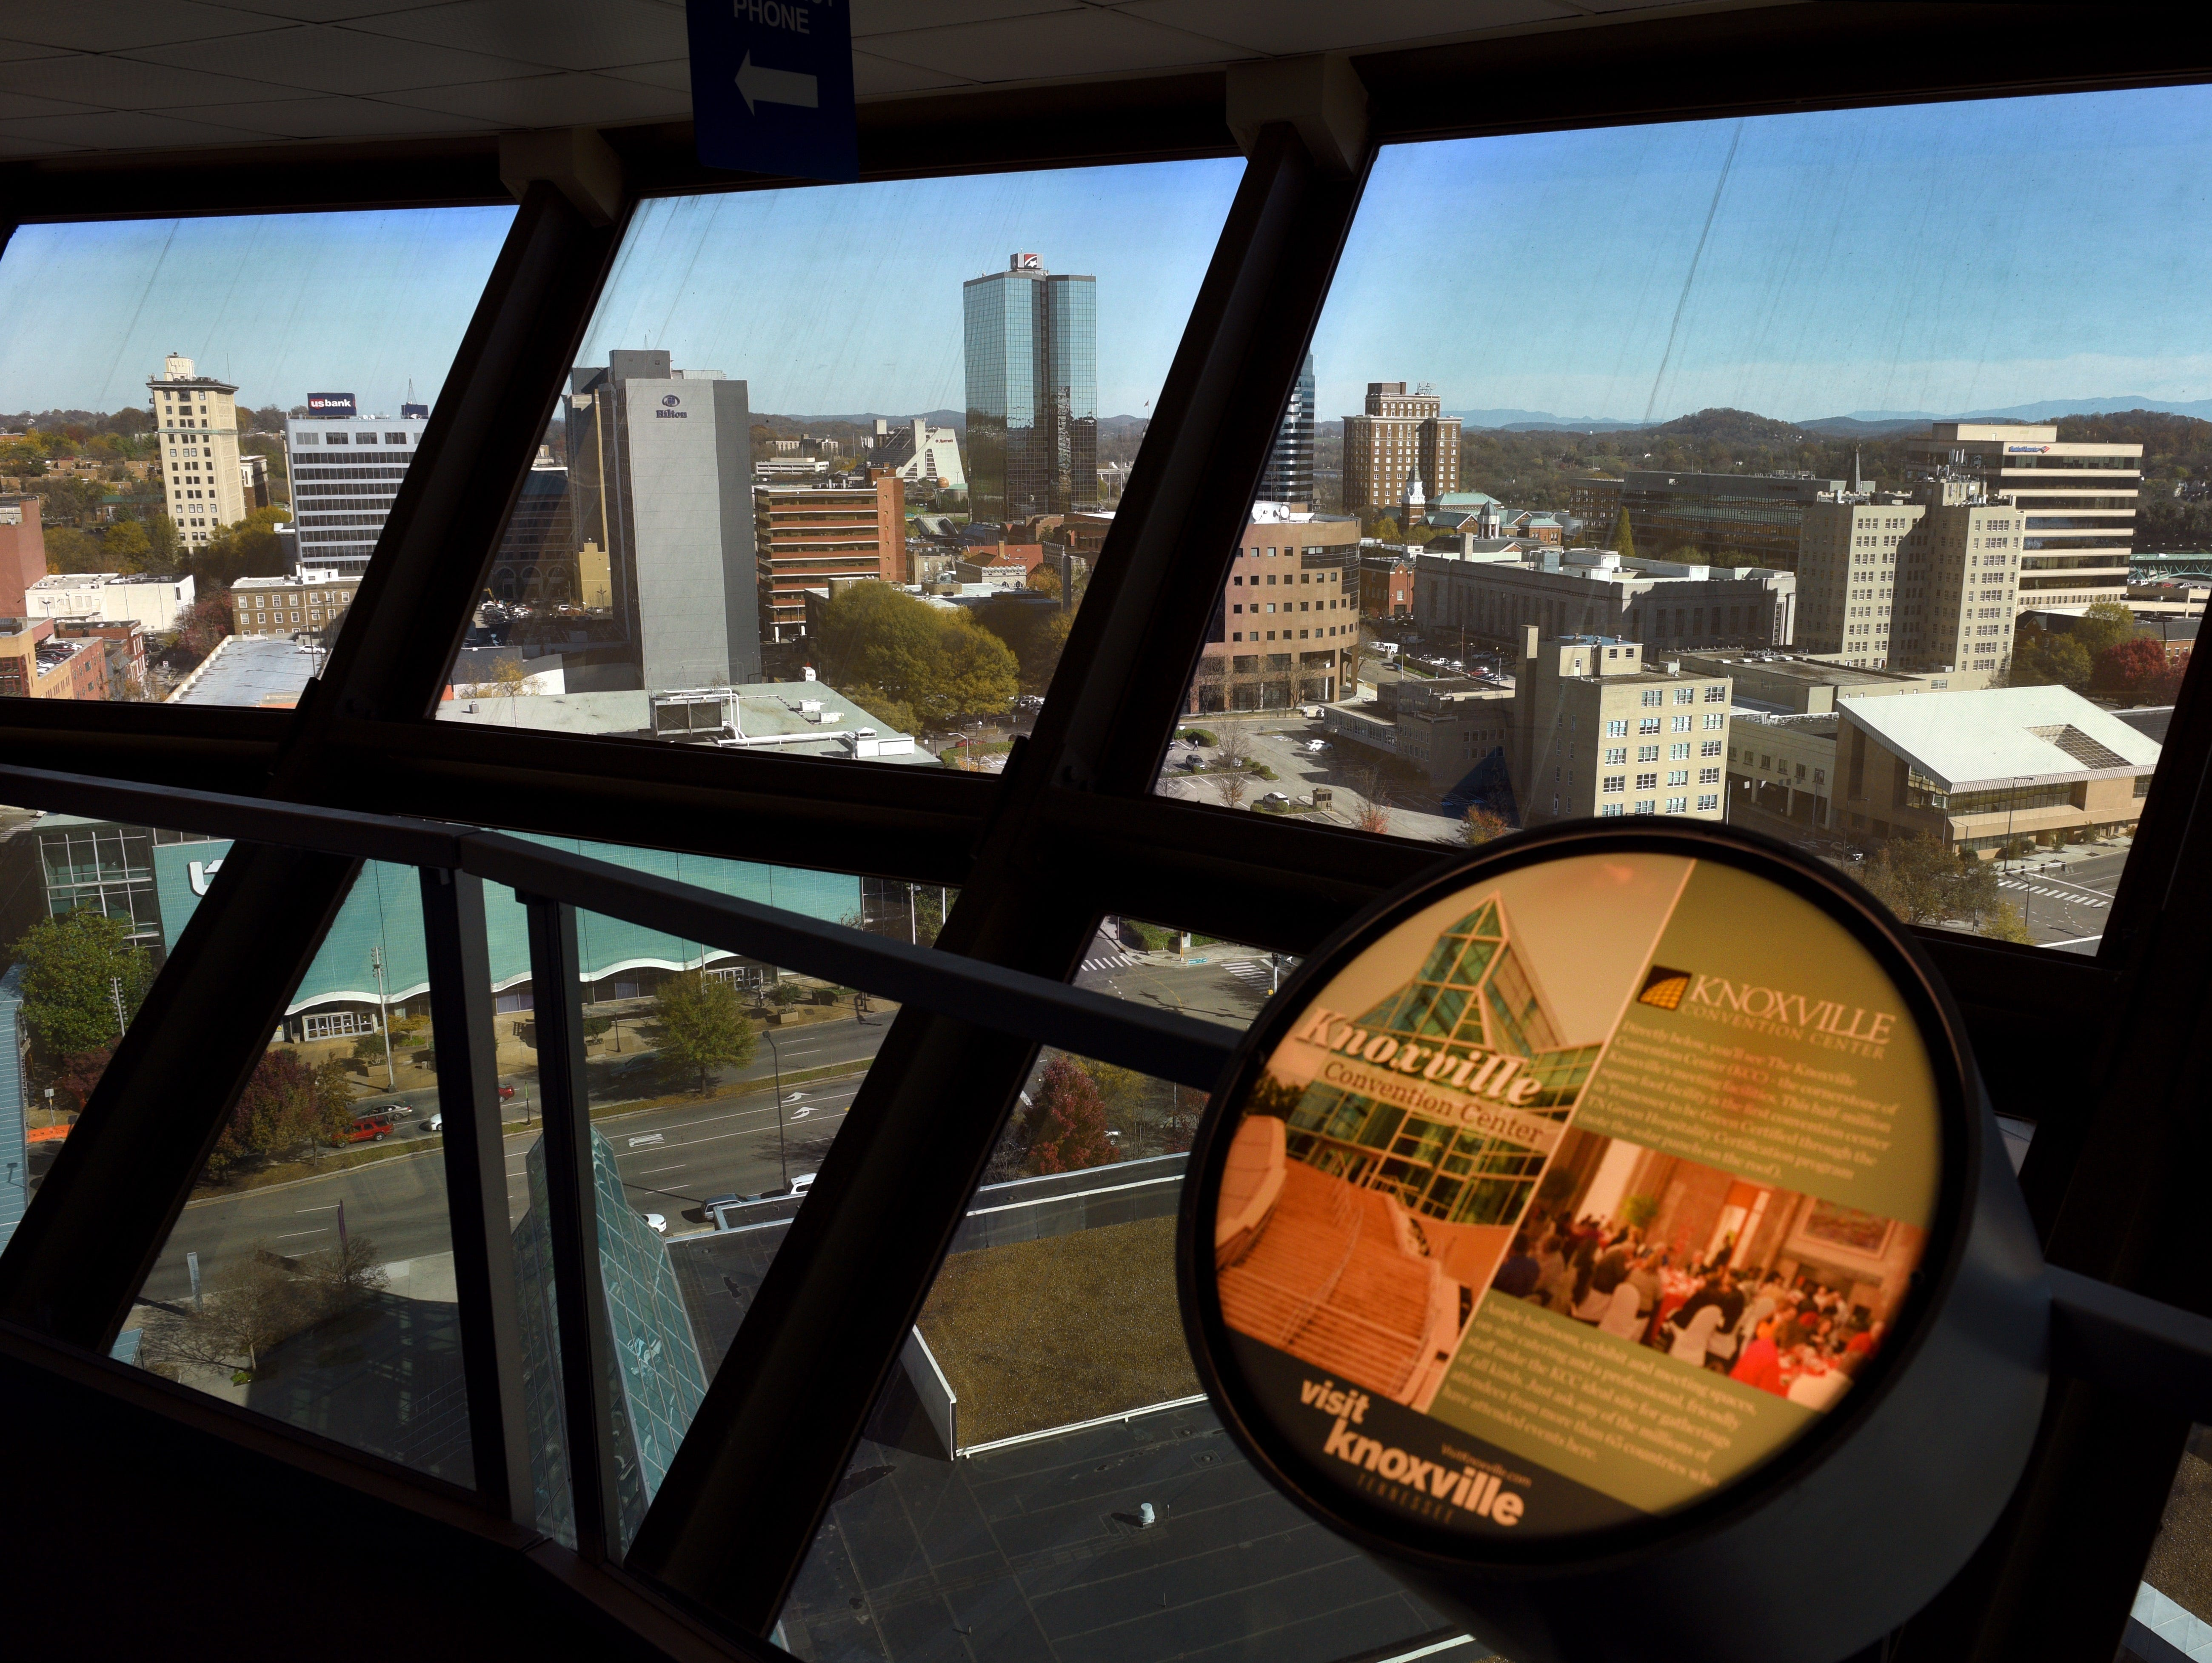 Downtown Knoxville as seen from inside the observation deck in the Sunsphere Thursday, Nov. 19, 2015.